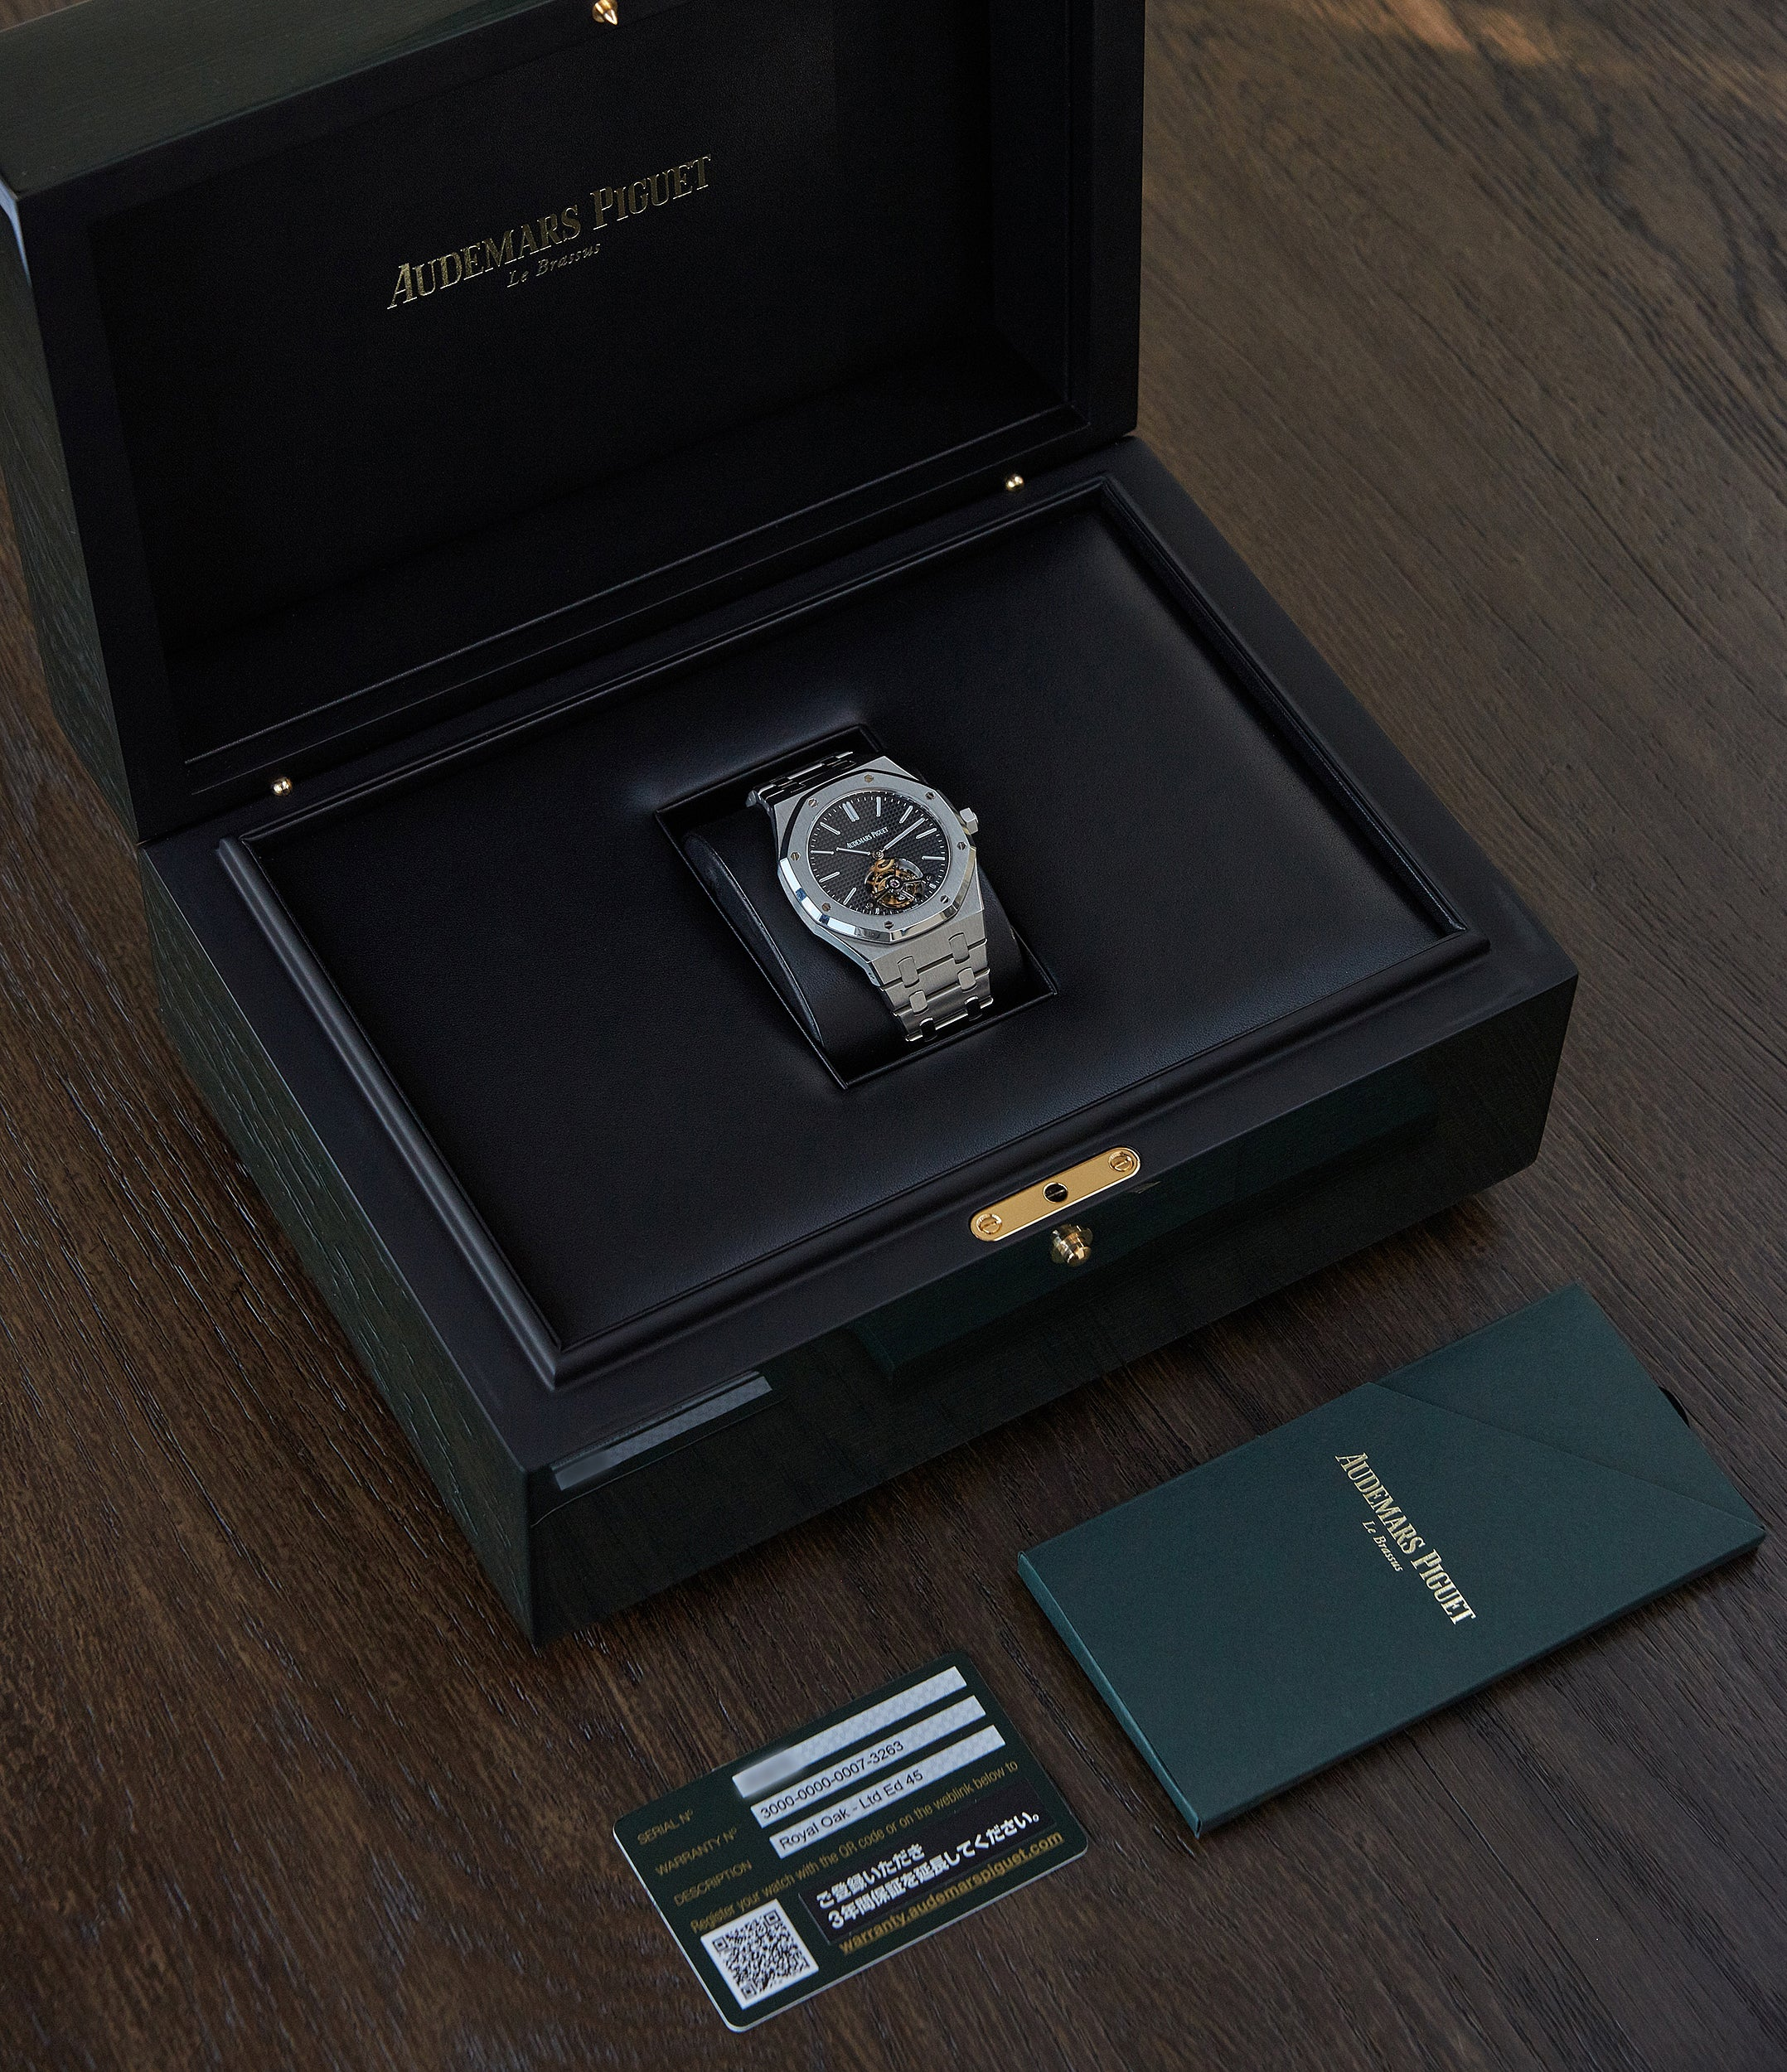 Full set Audemars Piguet Royal Oak Tourbillon extra-slim Special Edition Japanese steel pre-owned watch for sale online at A Collected Man London UK specialist of rare watches